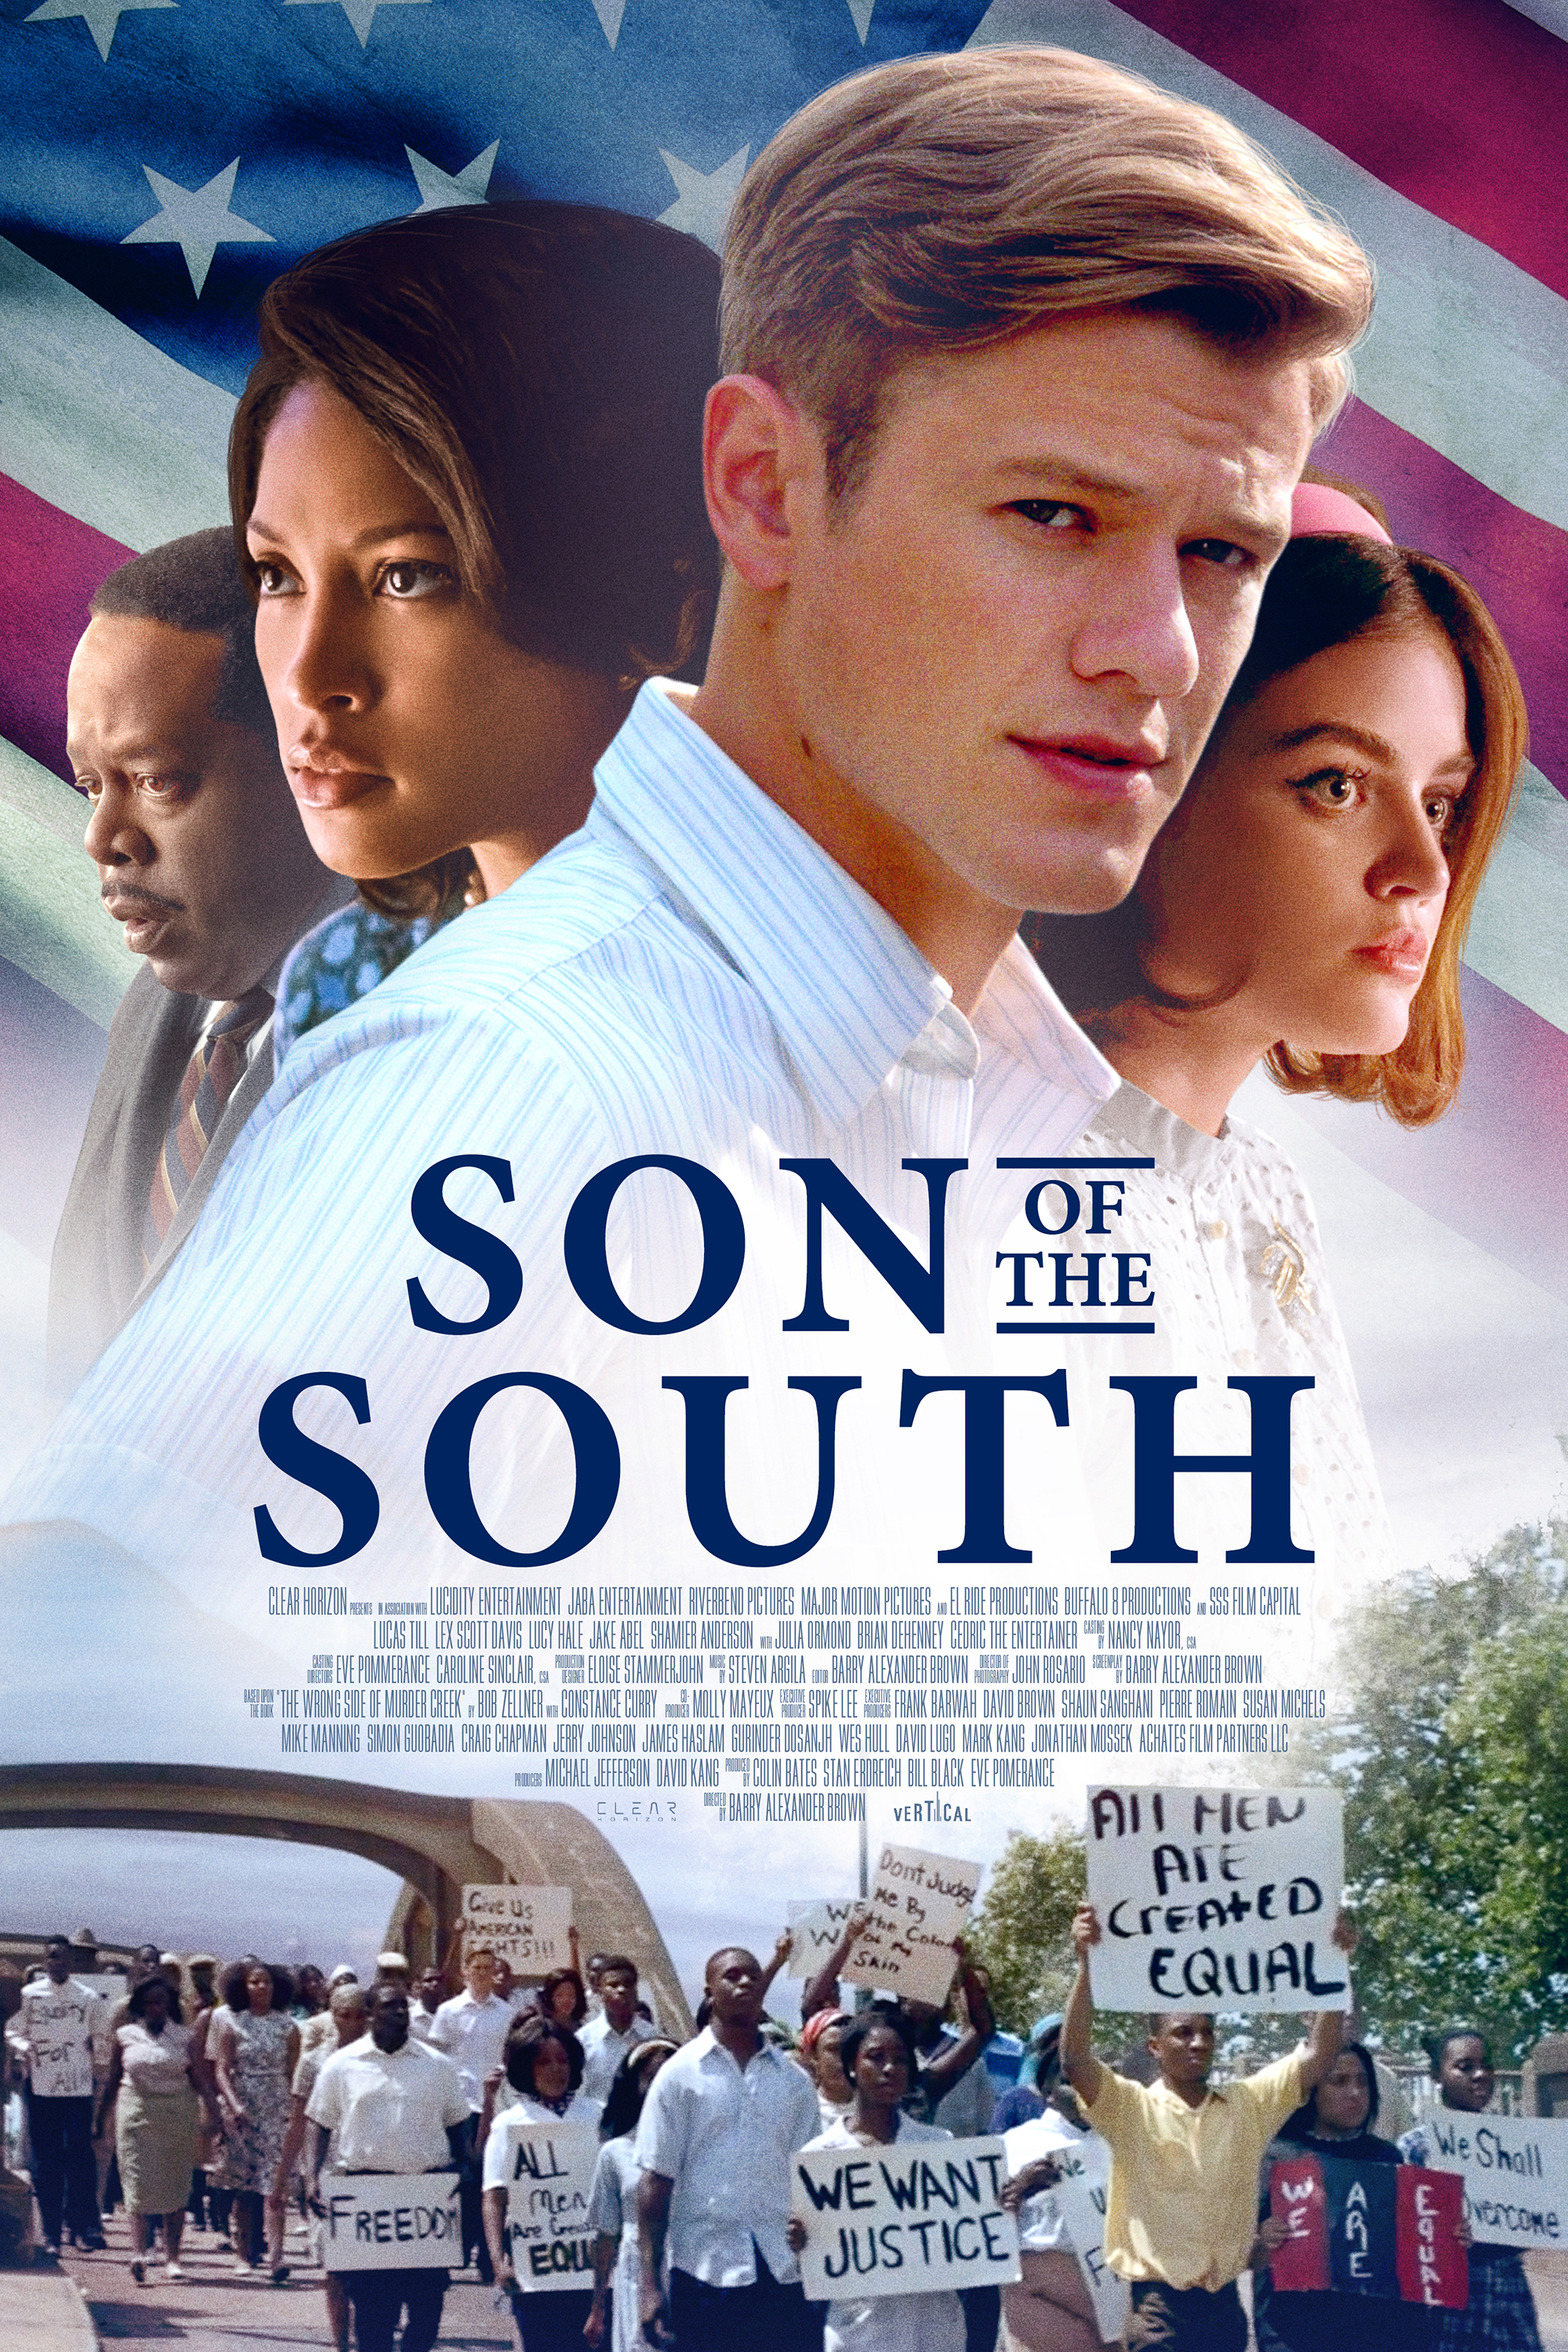 Still of Son of the South